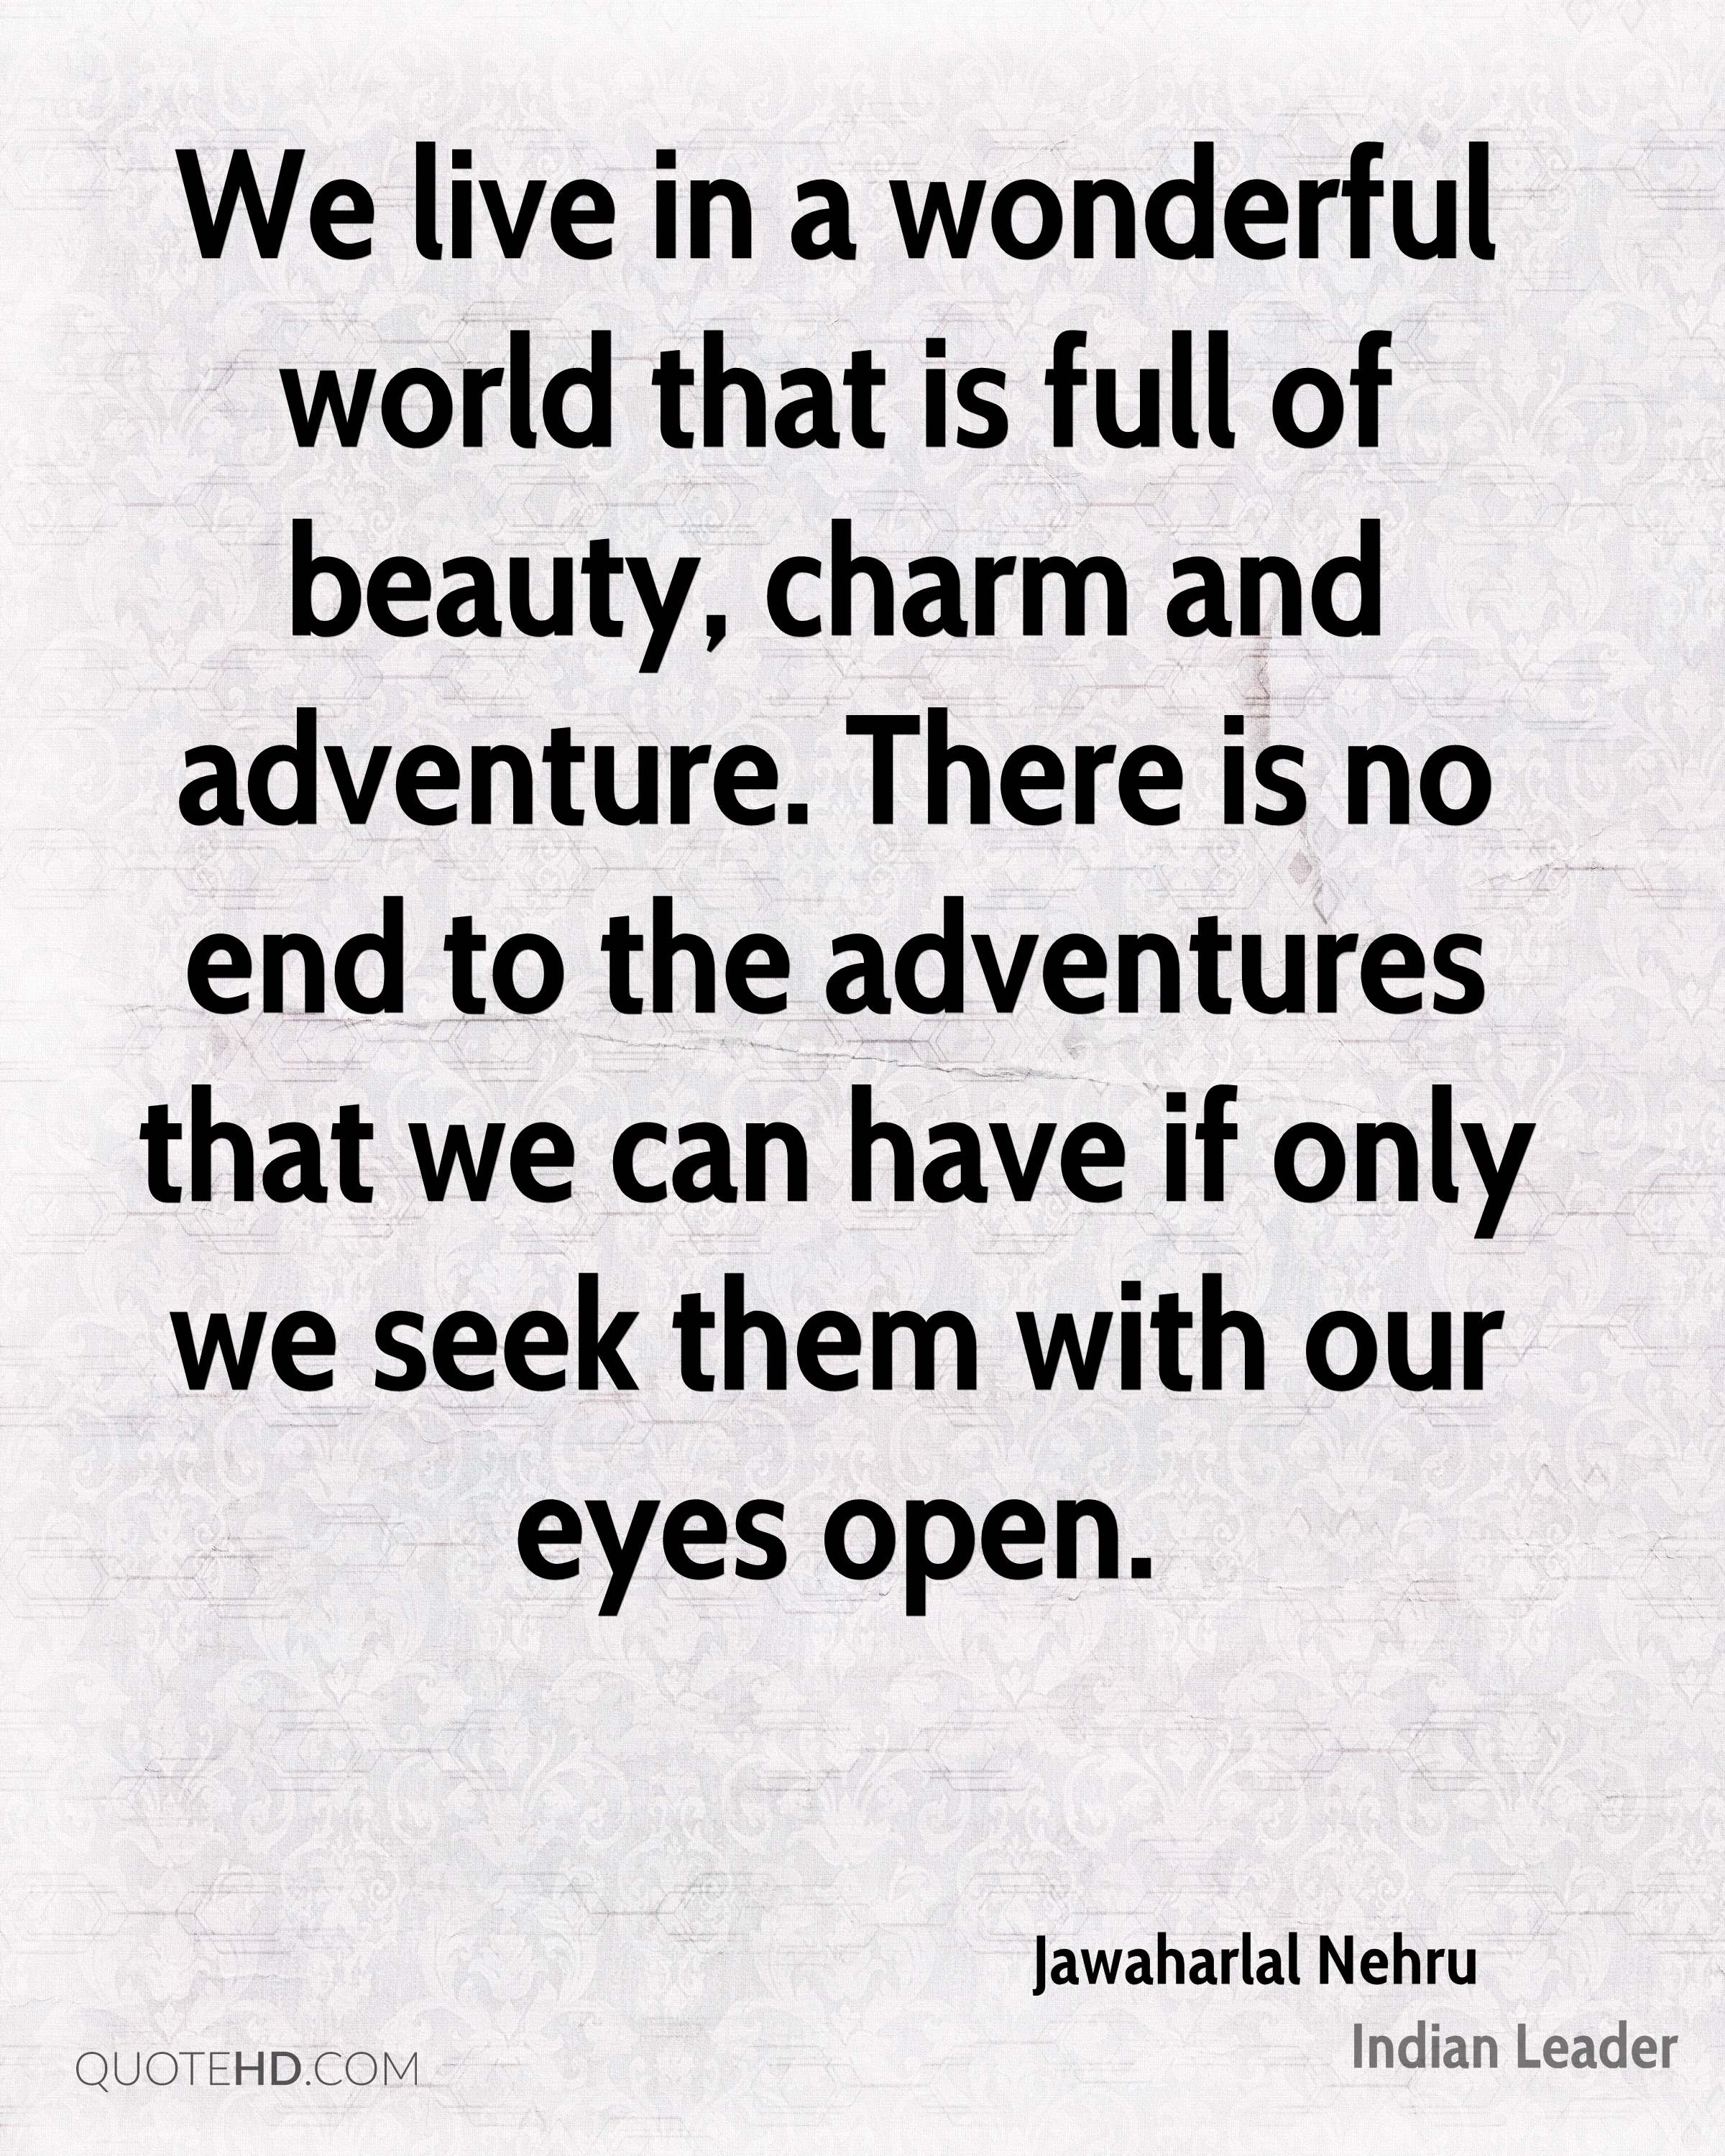 We live in a wonderful world that is full of beauty, charm and adventure. There is no end to the adventures that we can have if only we seek them with our eyes open.